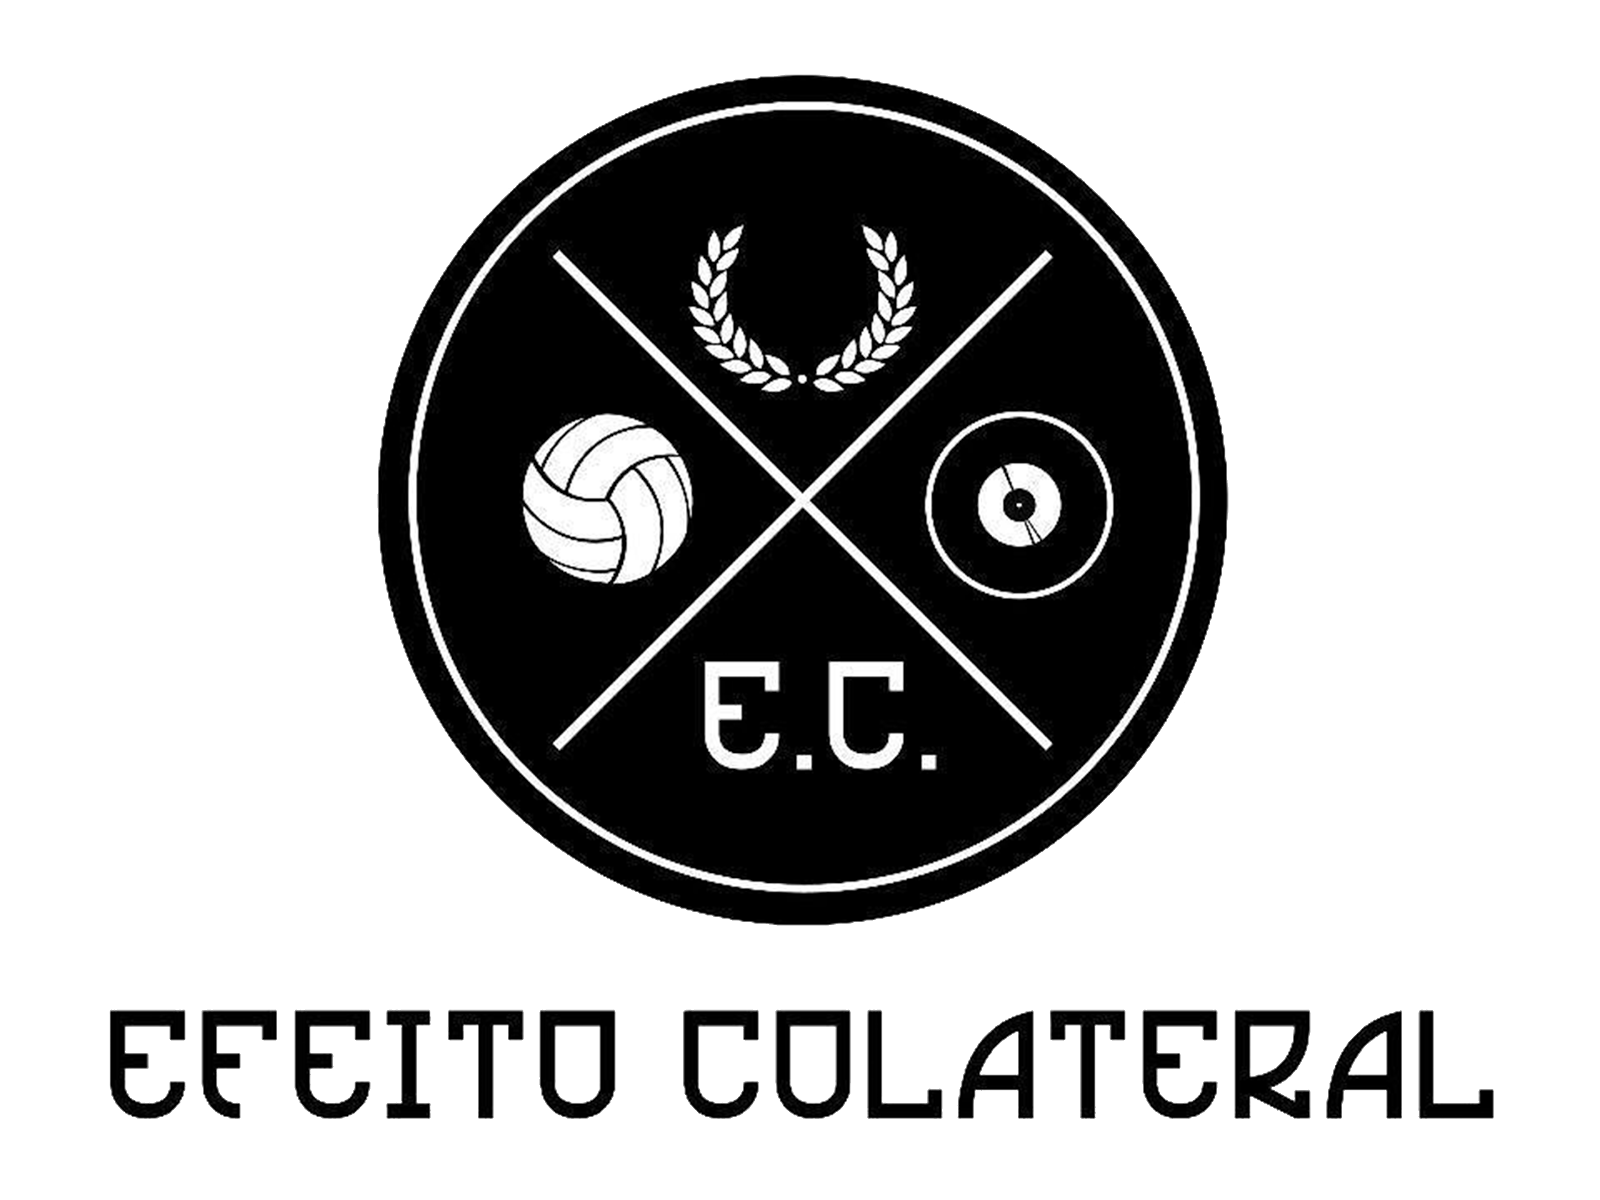 Efeito Colateral Records